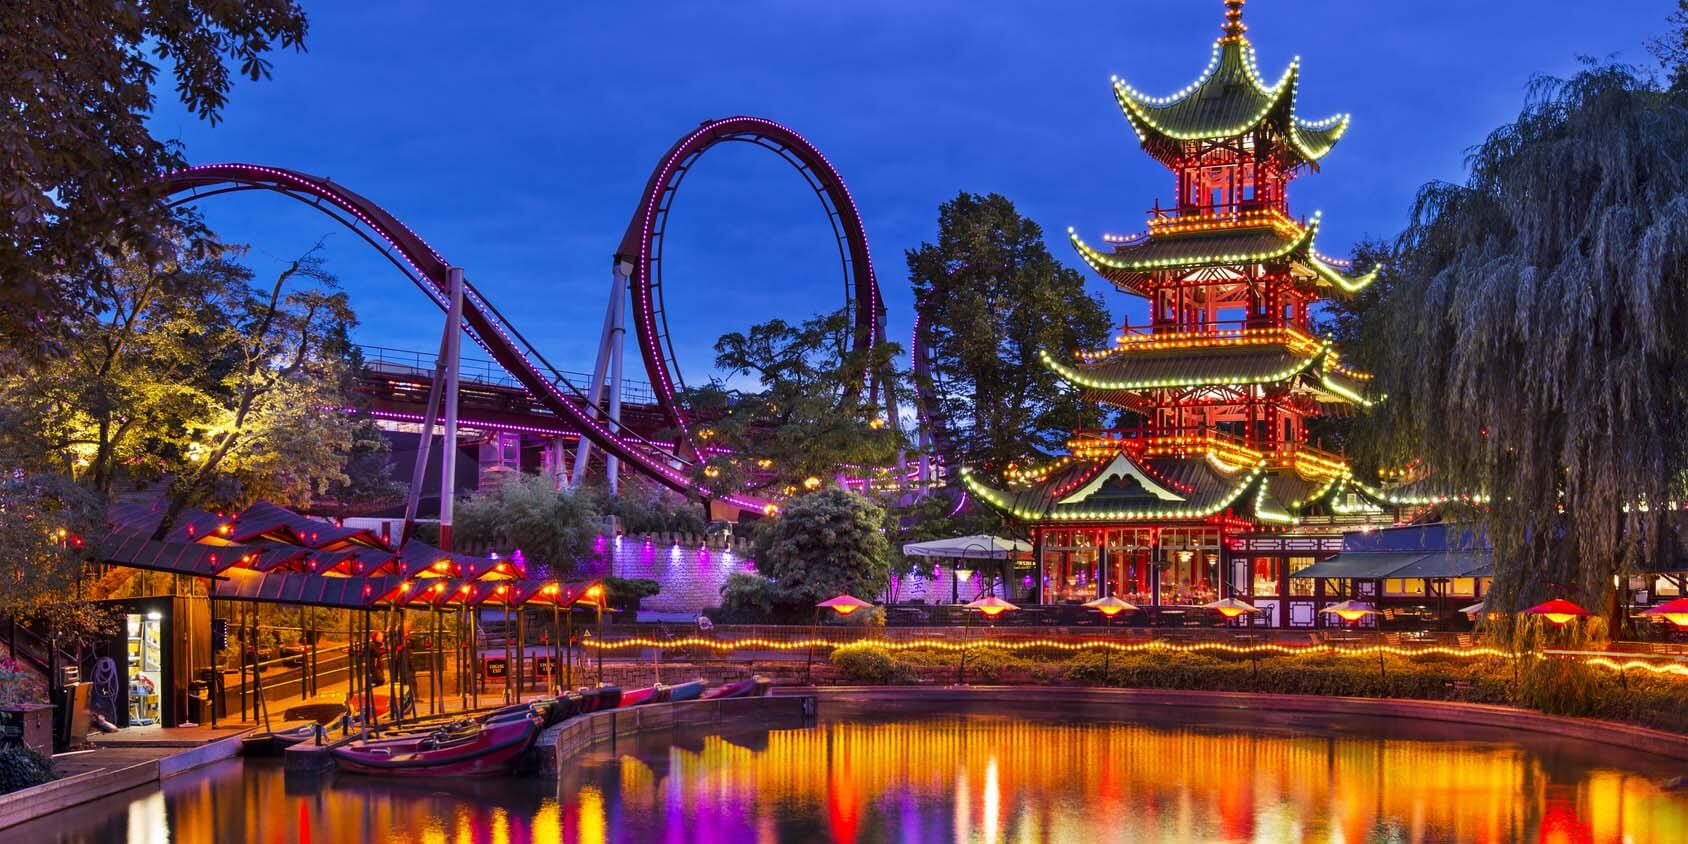 Tivoli Ny Images Destination Attraction Tivoli Gardens Denmark